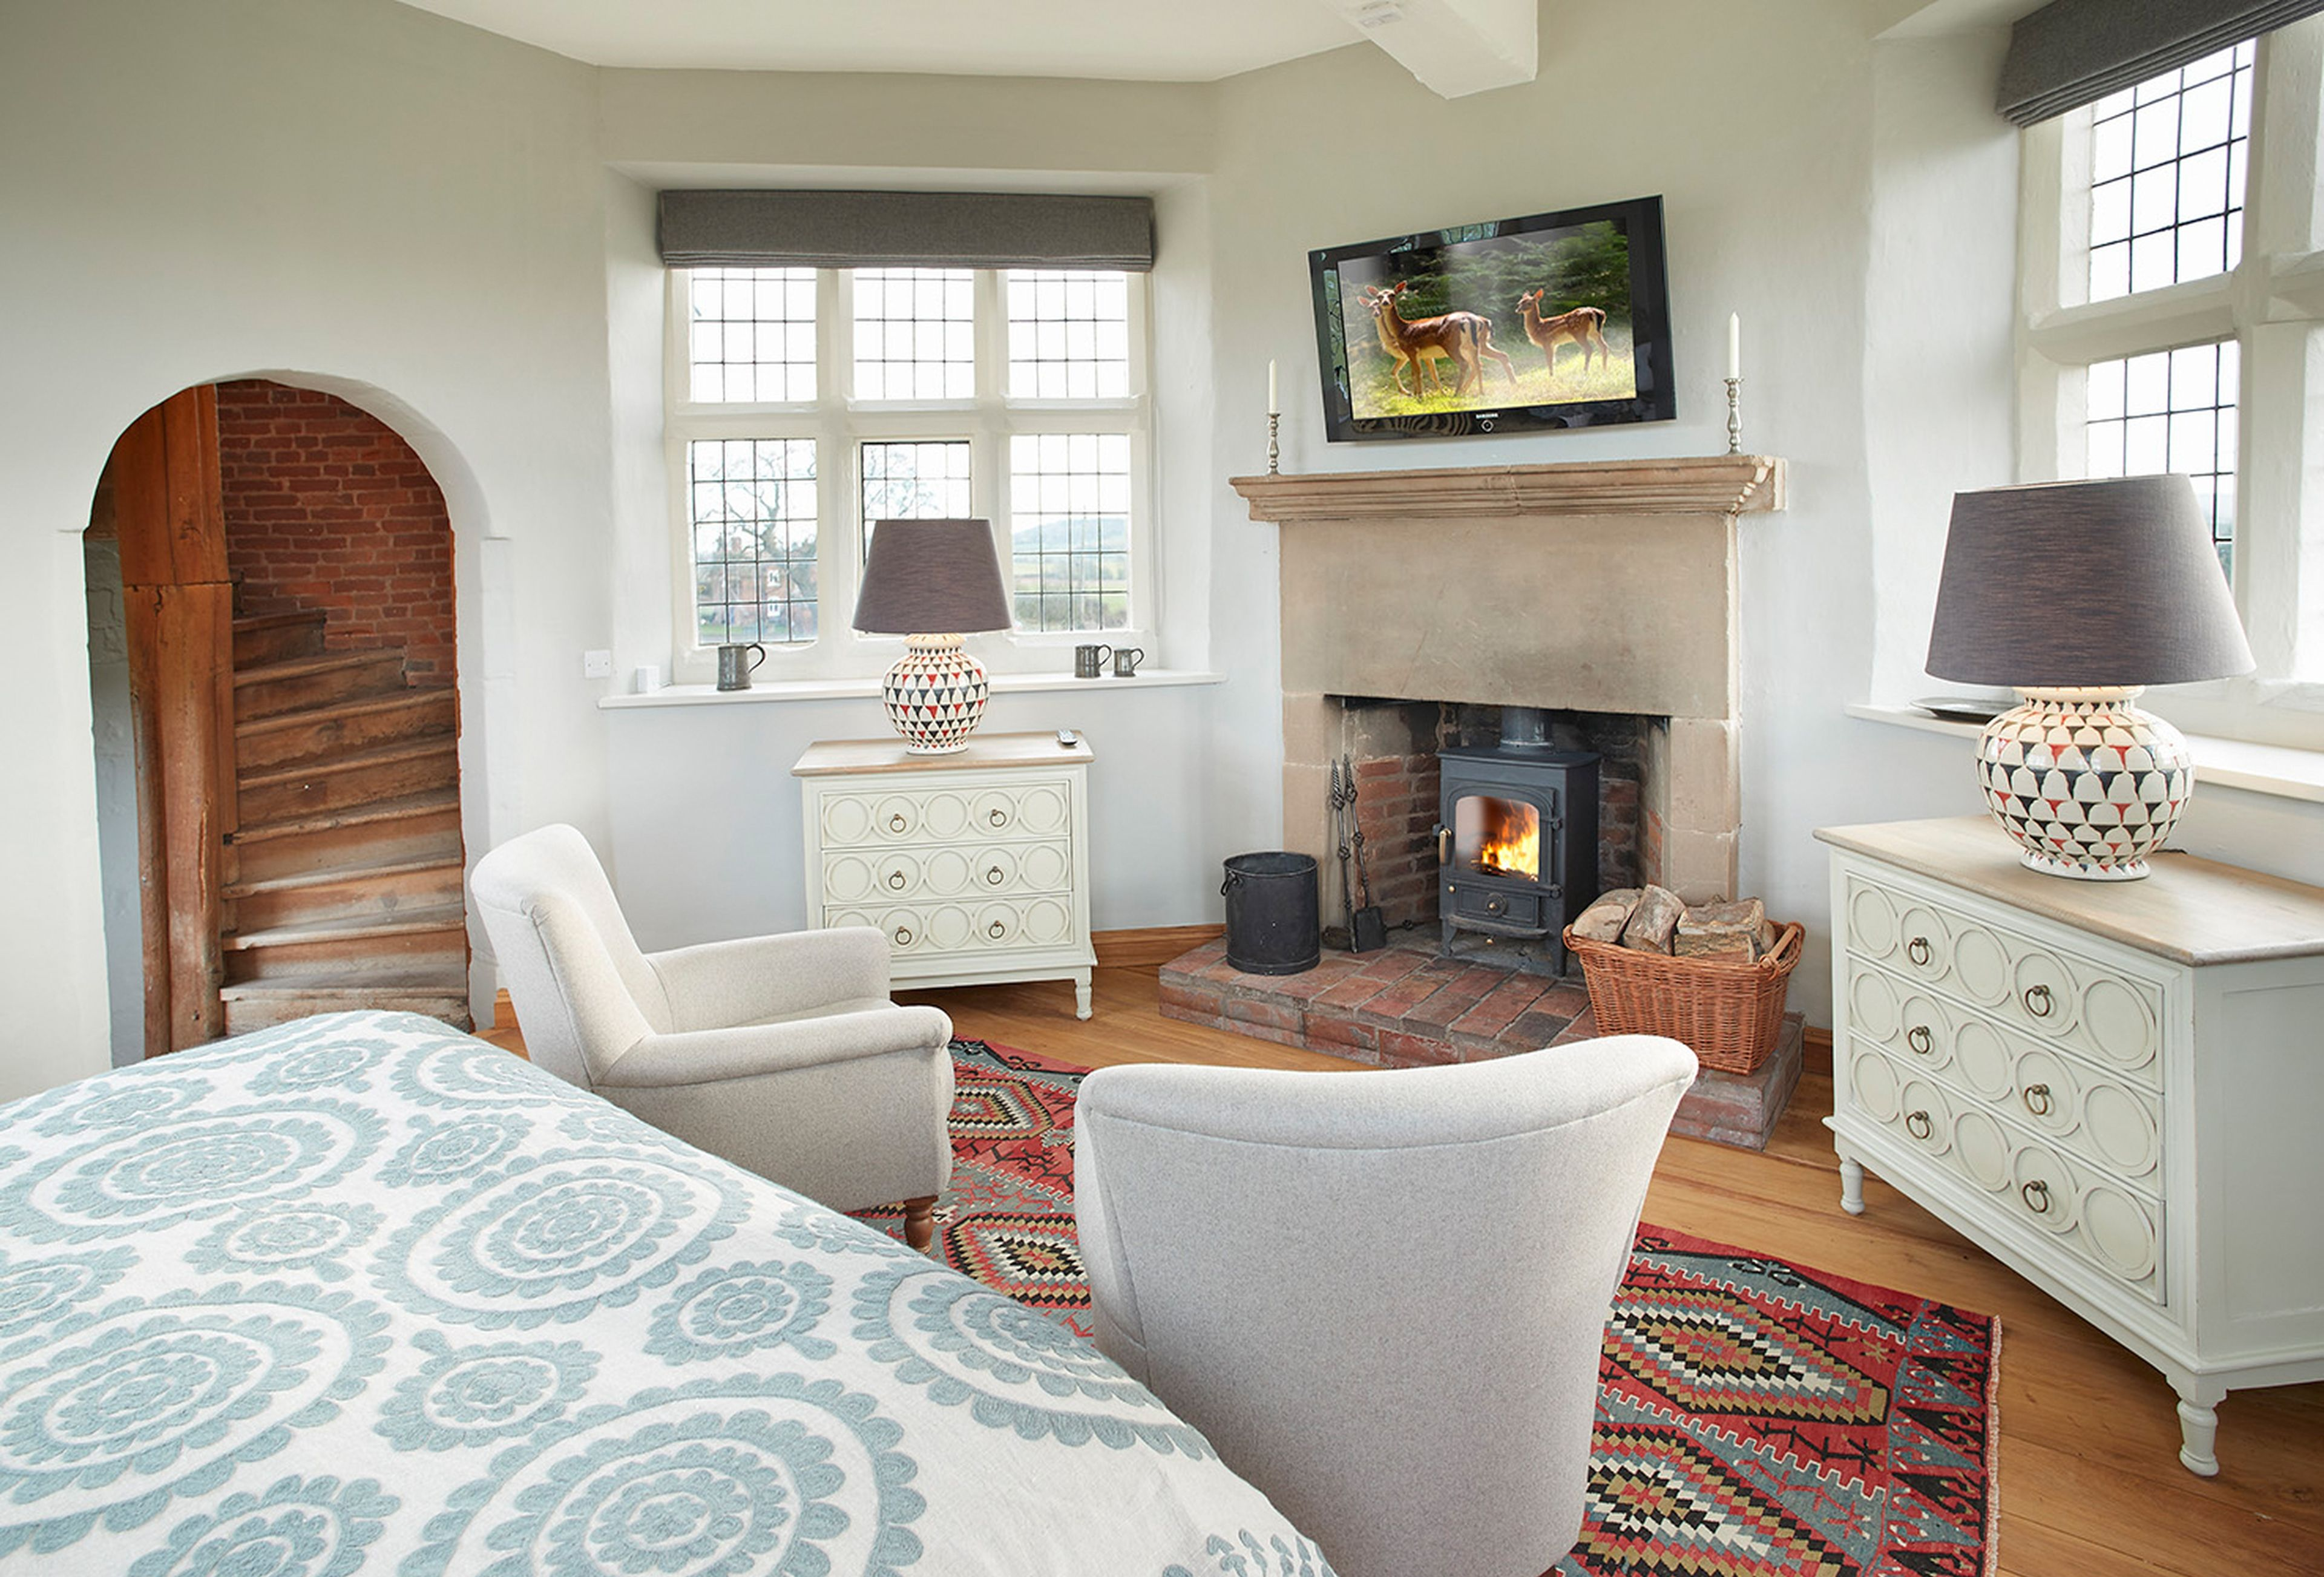 The Summer House - Holiday cottages and homes in Shropshire - Rural ...